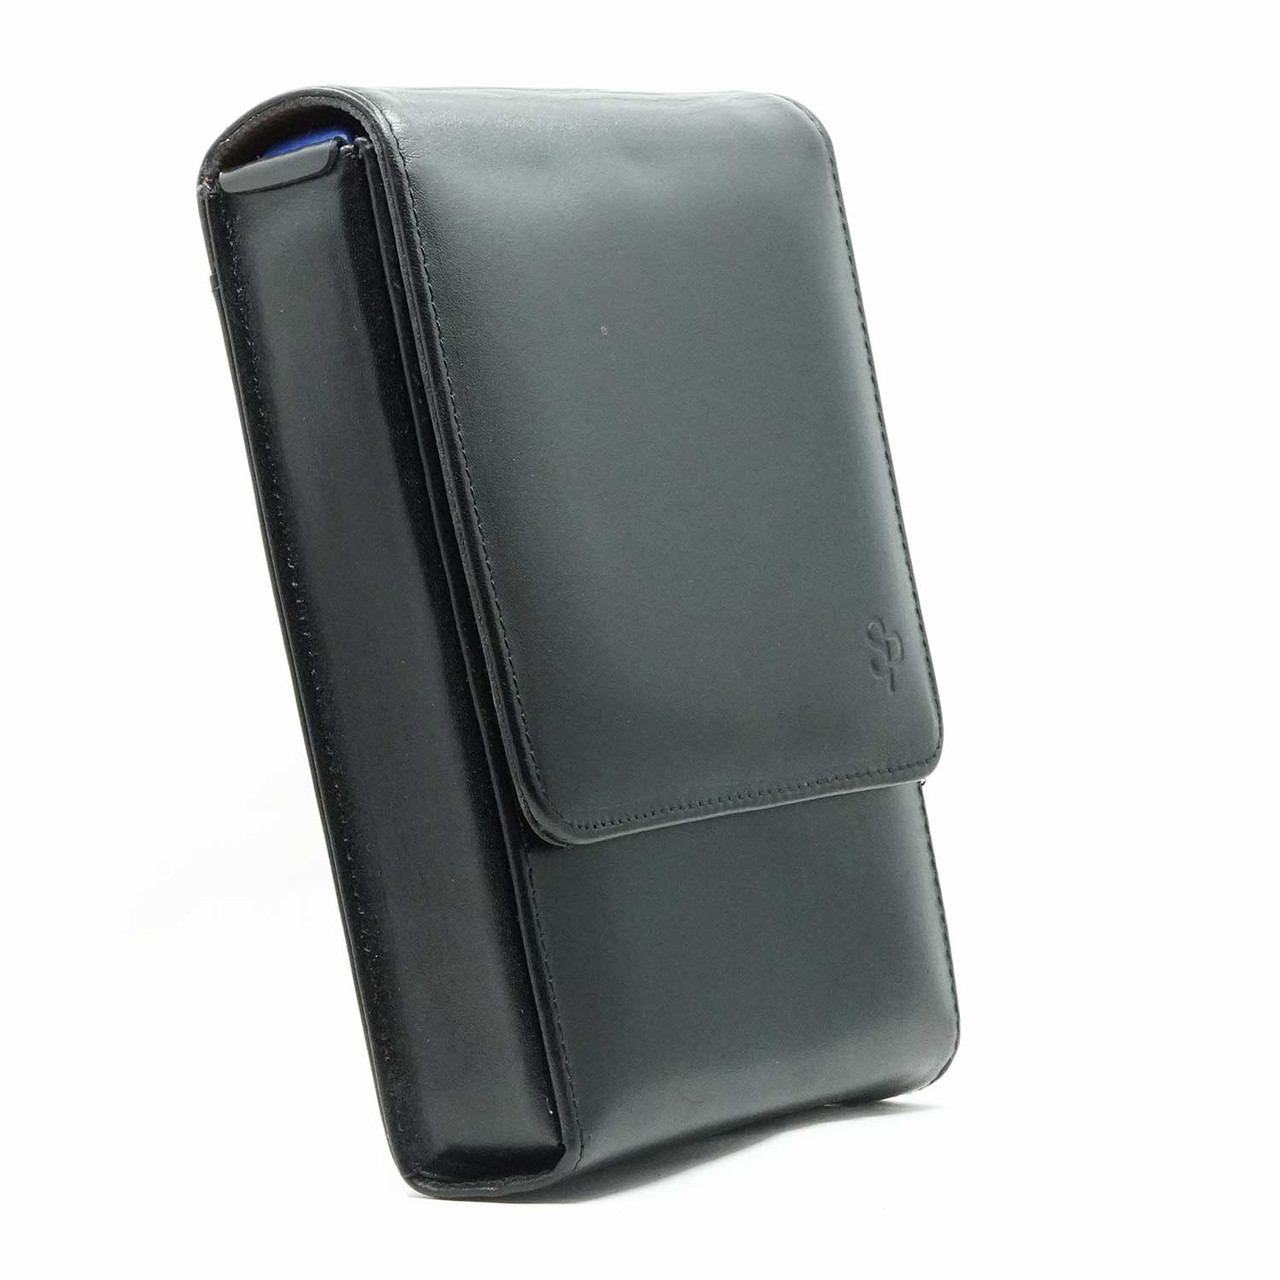 Ruger Security 9 Sneaky Pete Holster (Belt Clip)